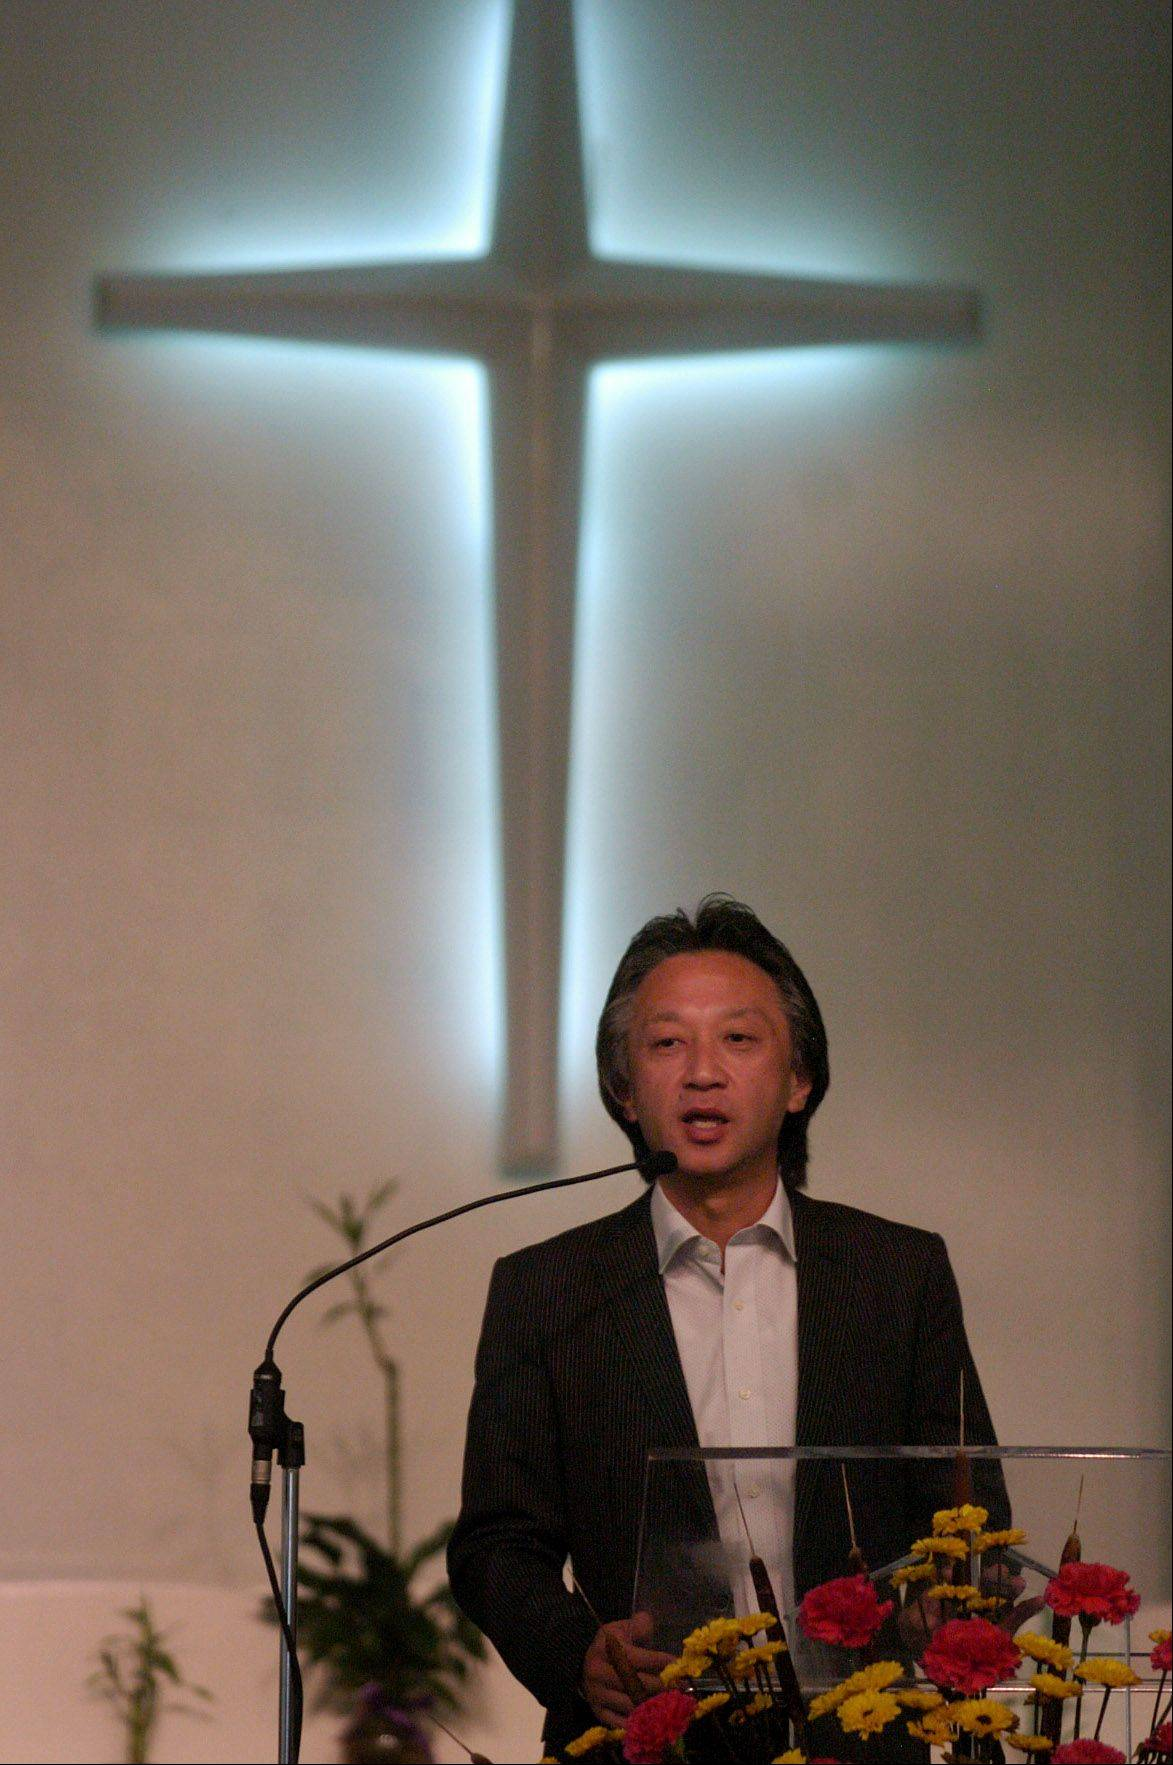 The Rev. Akira Sato, a minister whose congregation is trying to rebuild after losing their homes and church to the Japan nuclear power plant meltdown caused by the earthquake and tsunami, visits the Japanese Mission Baptist Church in Schaumburg.